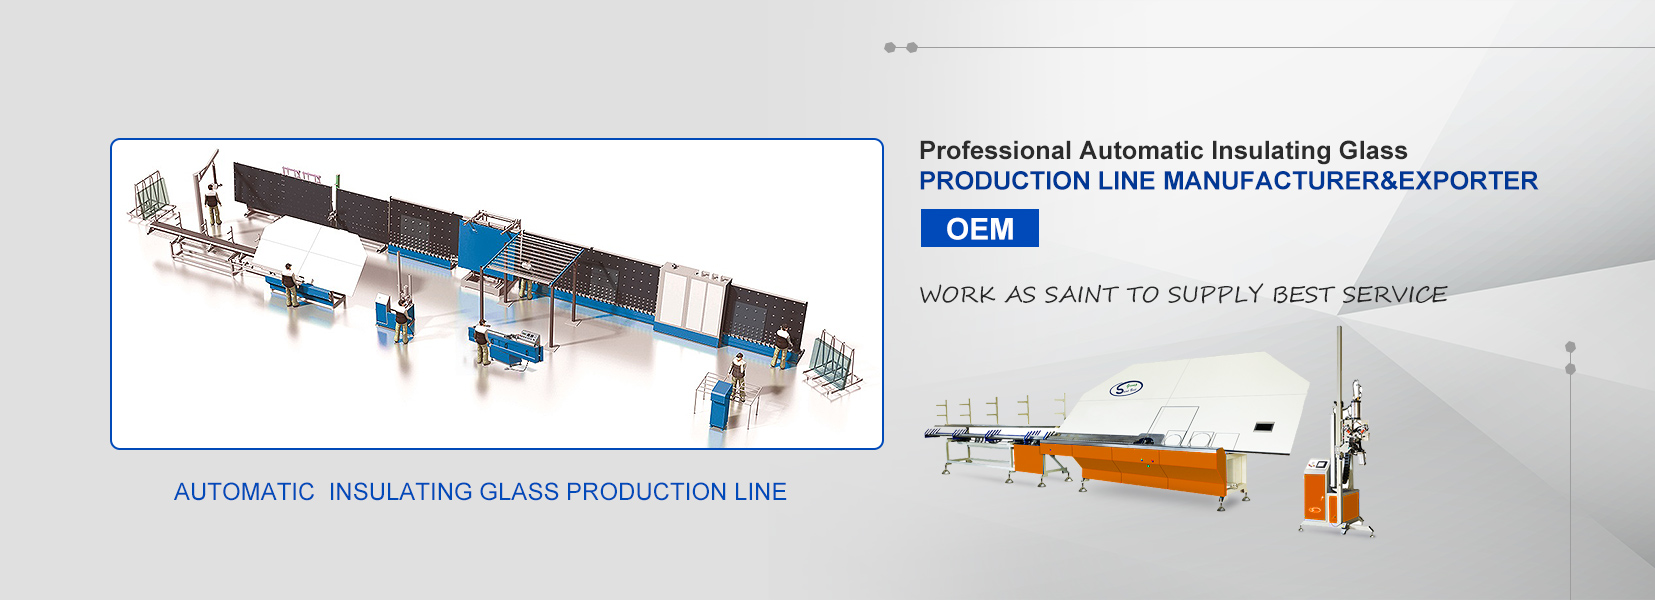 Professional Automatic Insulating Glass  Production Line Manufacturer&Exporter